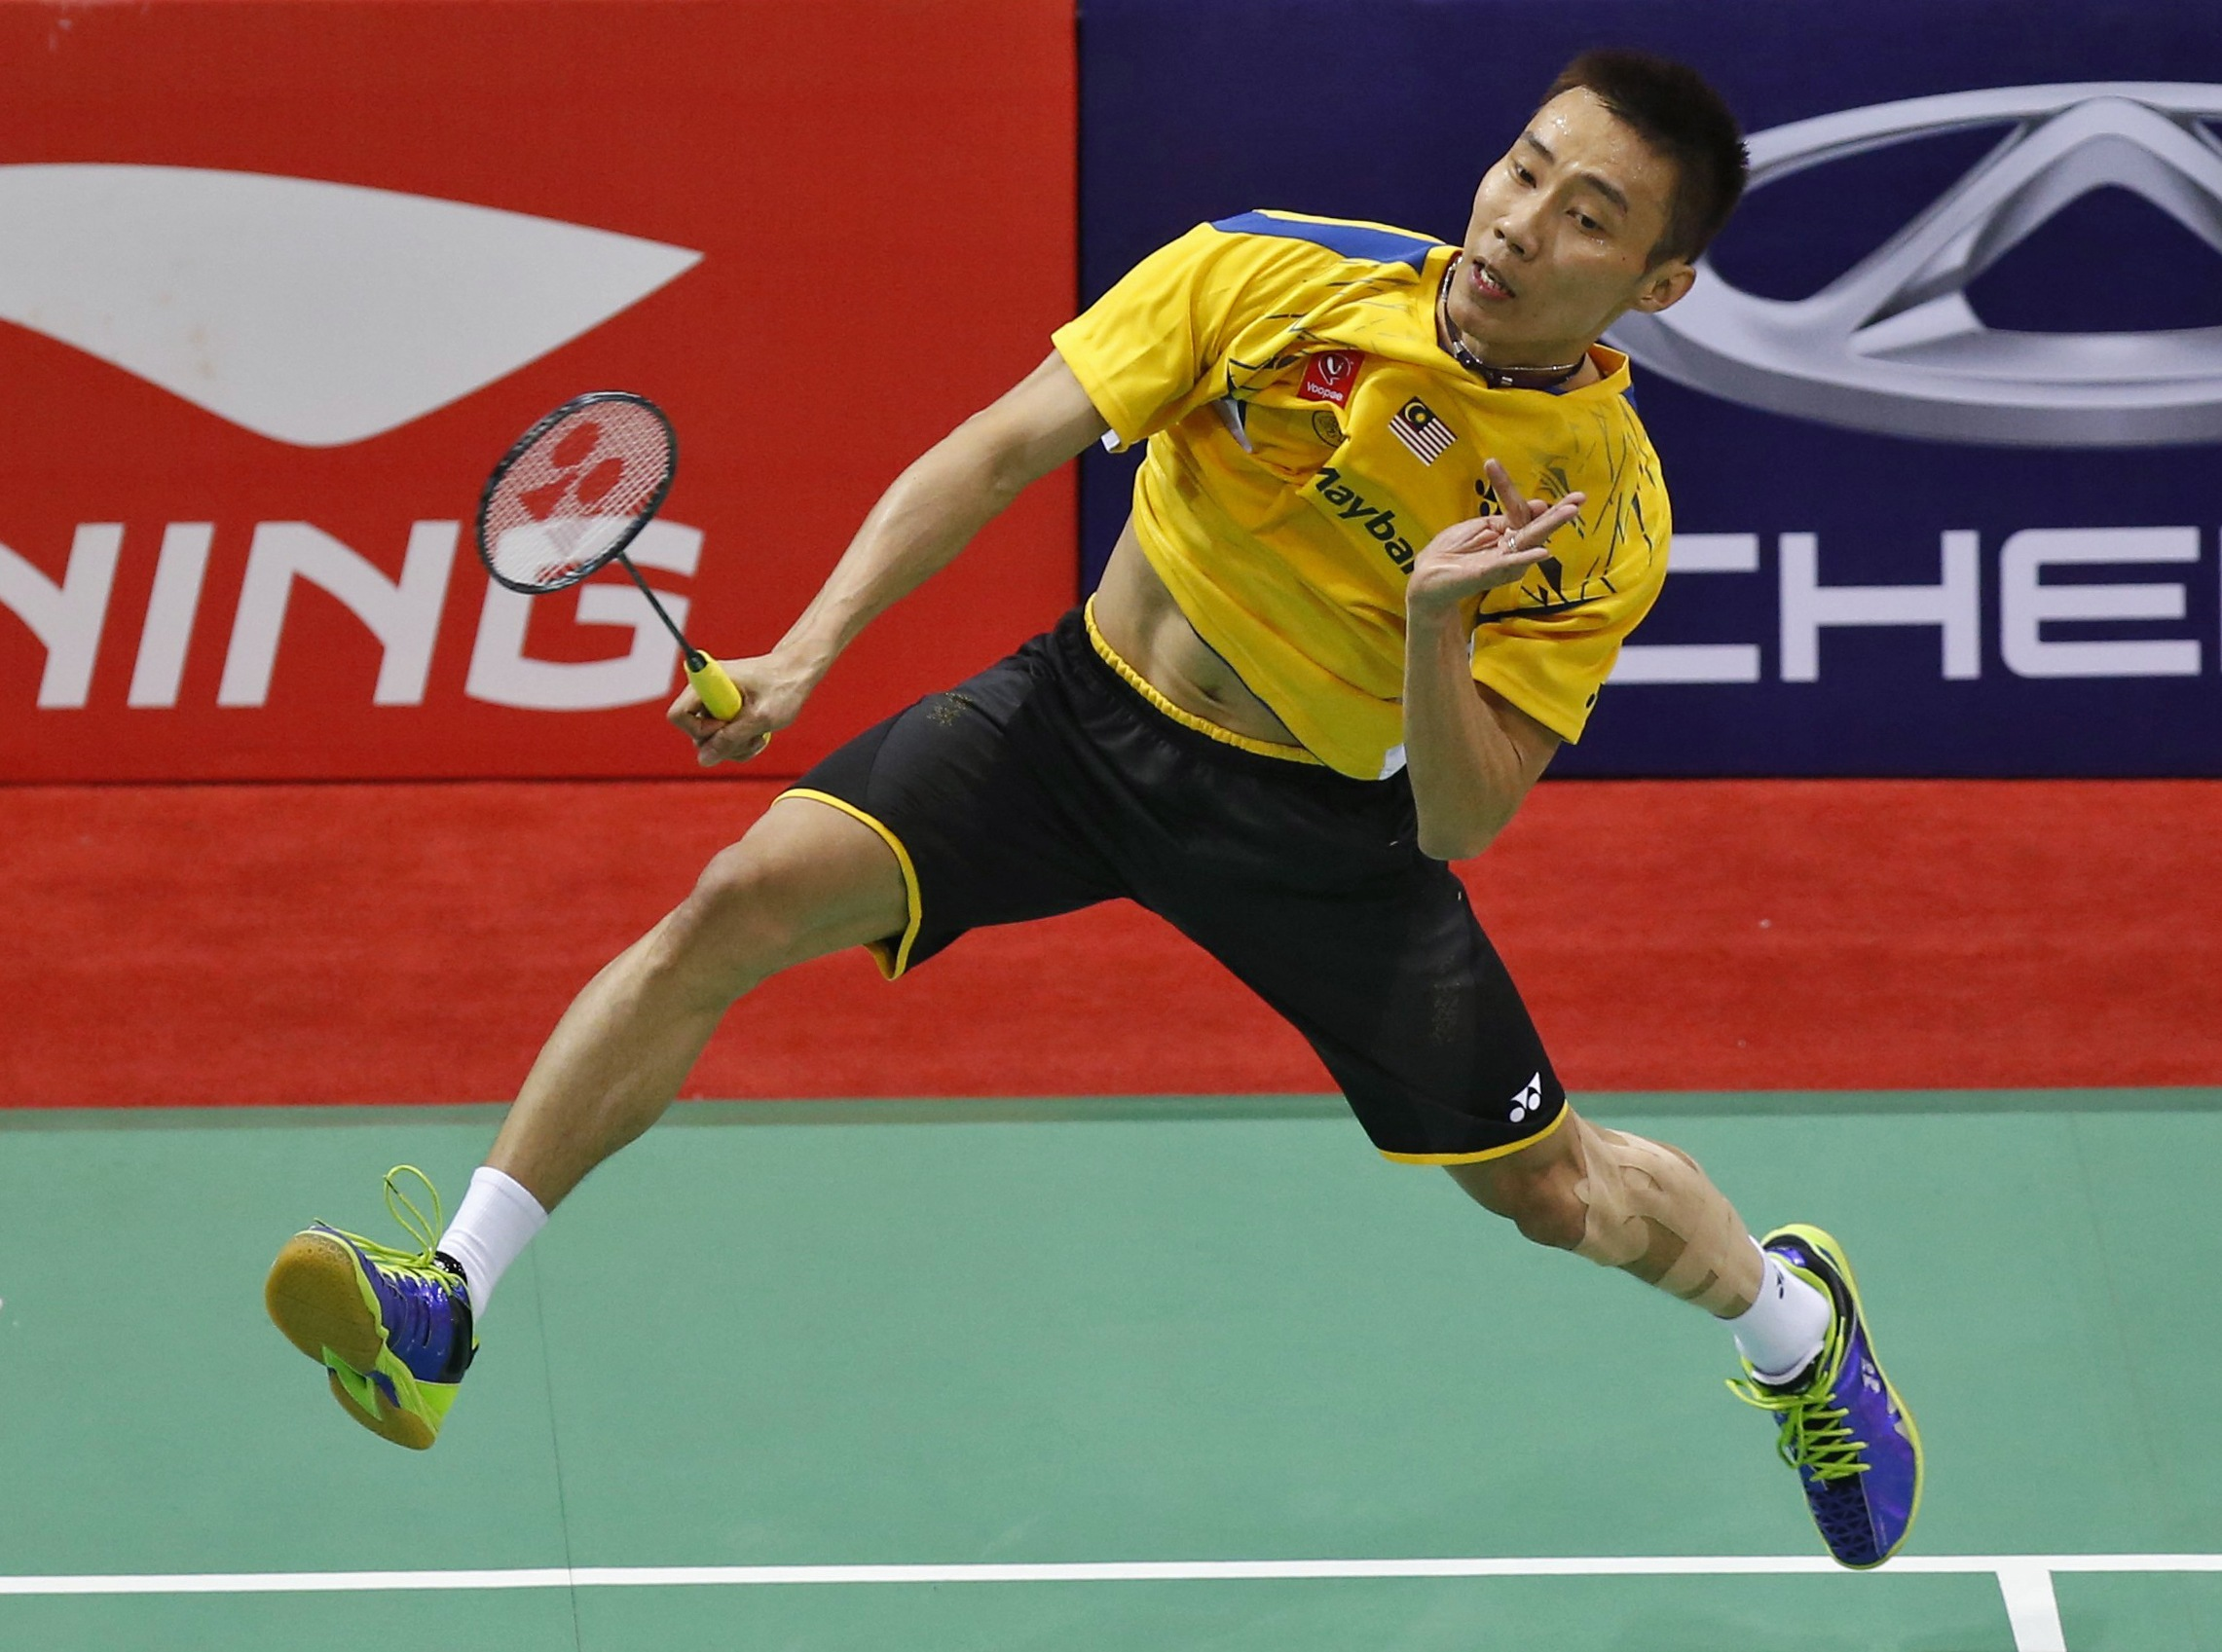 Malaysia's Lee Chong Wei prepares to return a shot to South Korea's Son Wan-ho during their men's singles match in the Thomas Cup badminton championship in New Delhi May 21, 2014. — Reuters pic